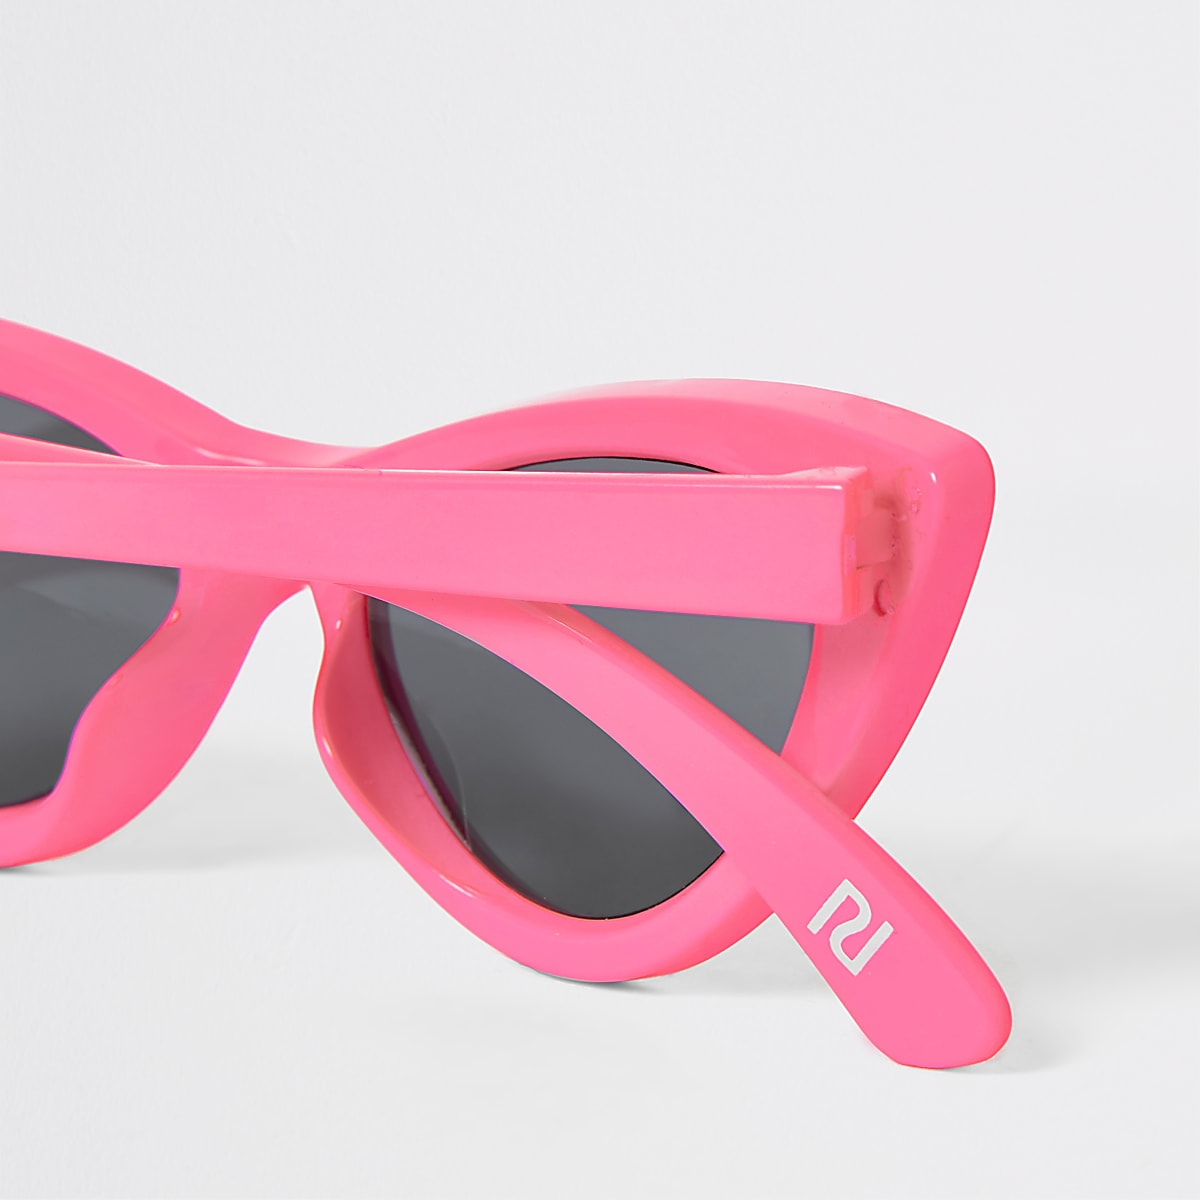 8fef6cca52204 Girls neon pink cat eye sunglasses - Sunglasses - Accessories - girls